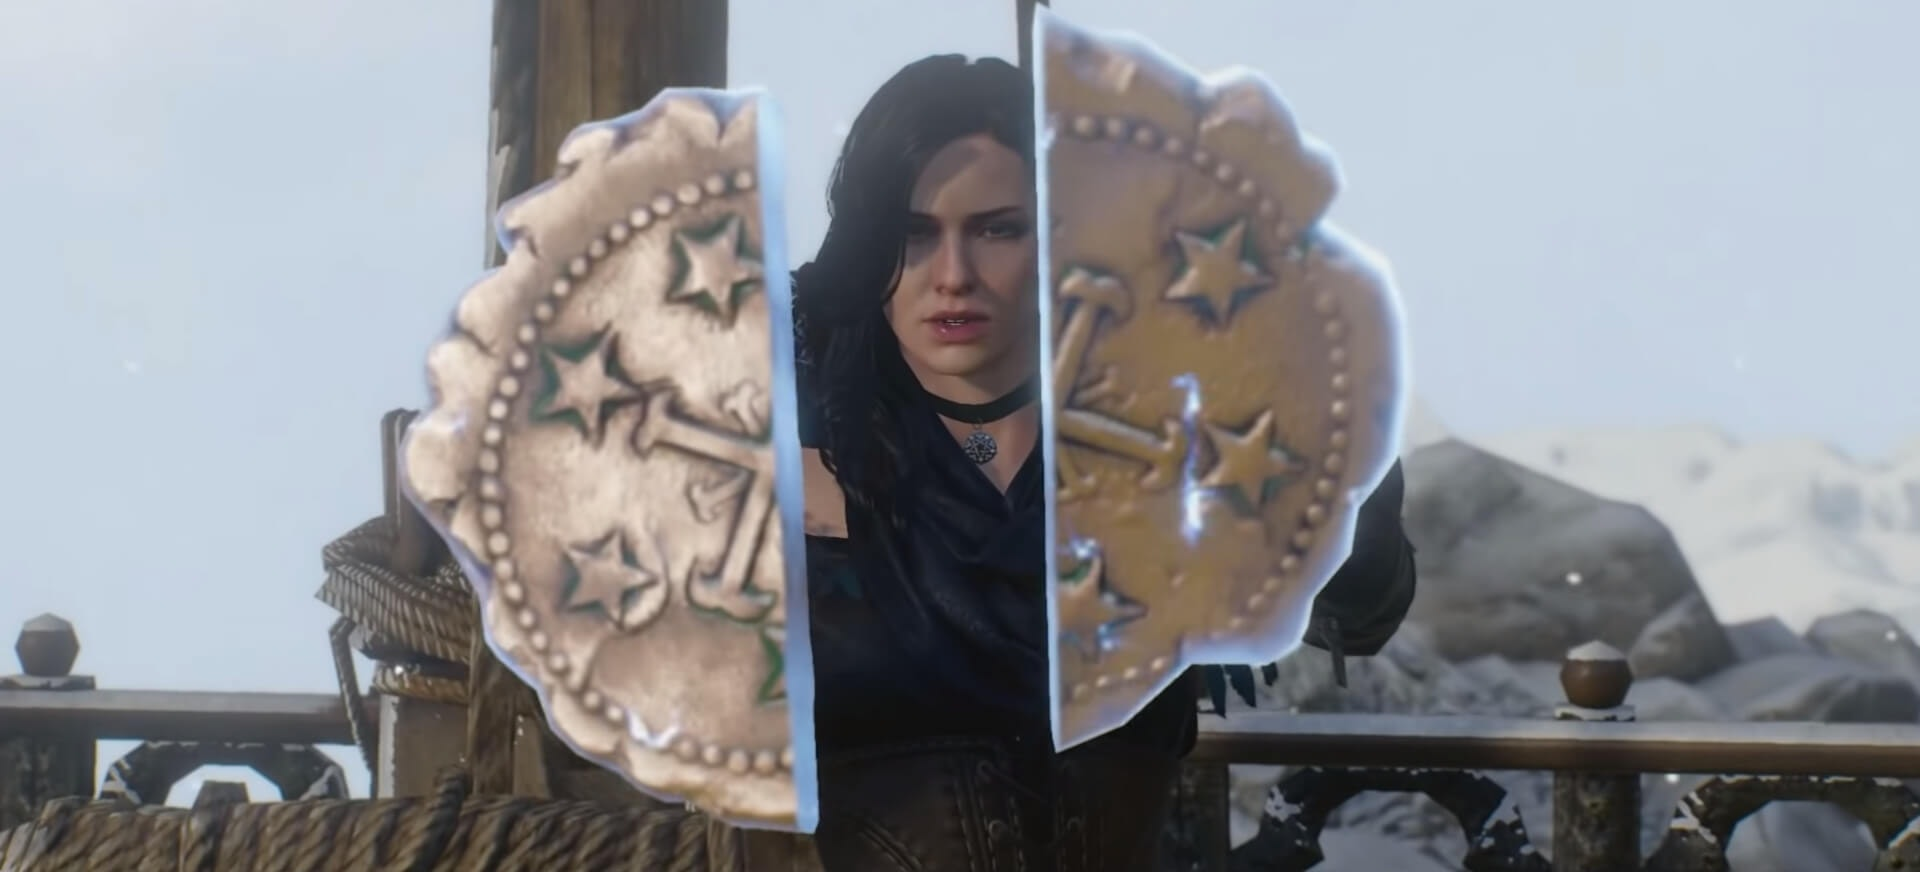 Yennefer - magic